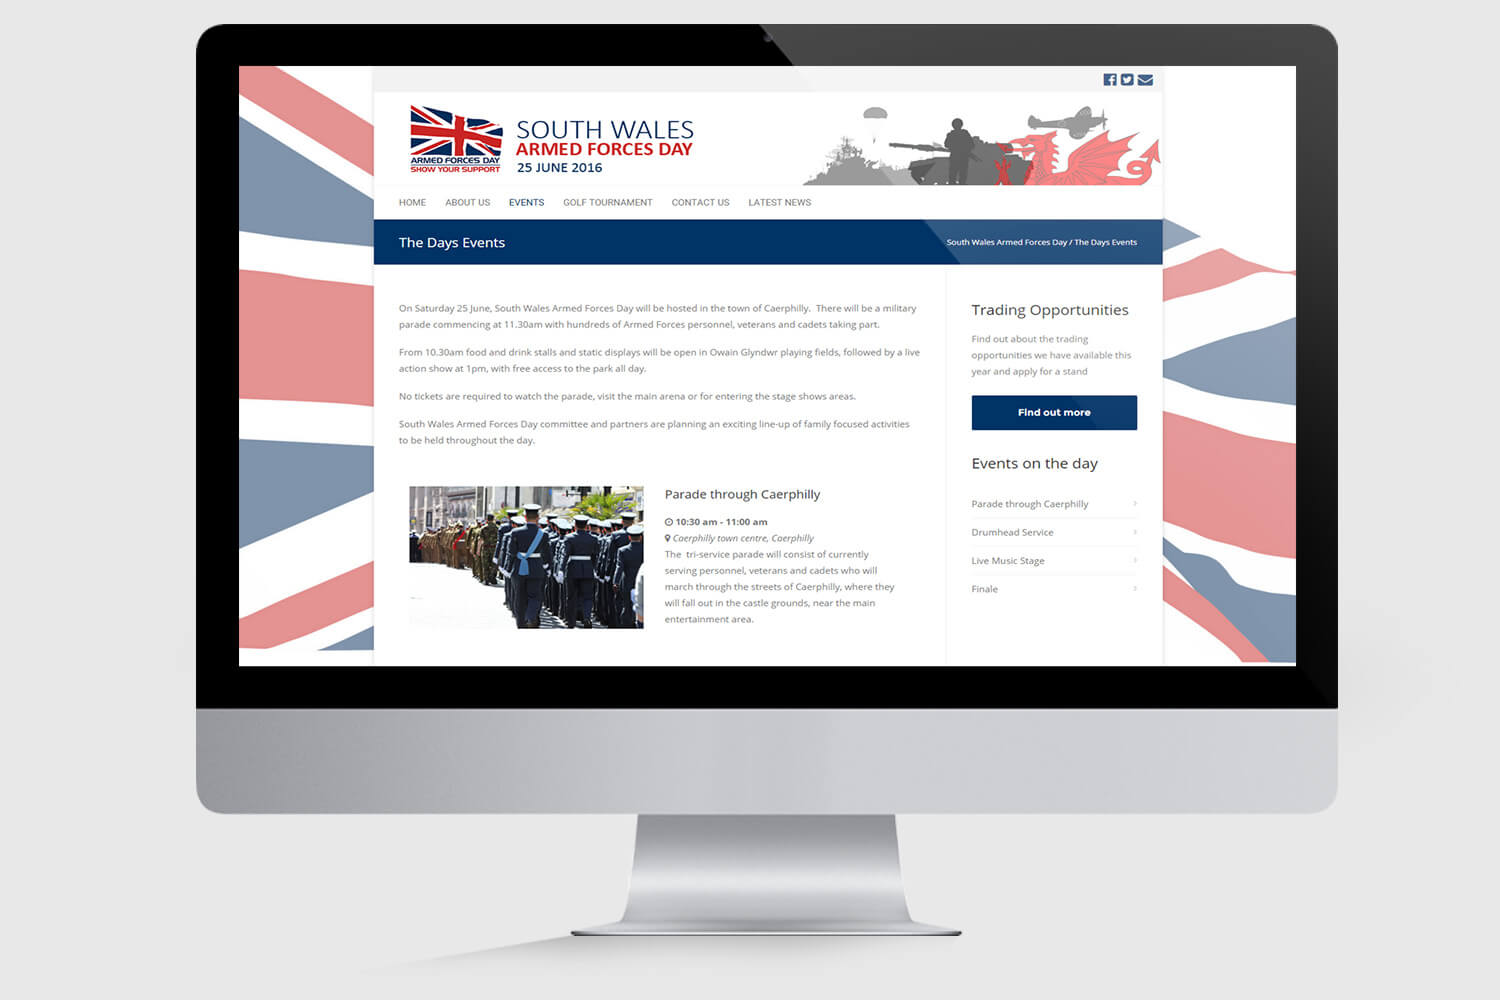 South Wales Armed Forces Day Mockup 2